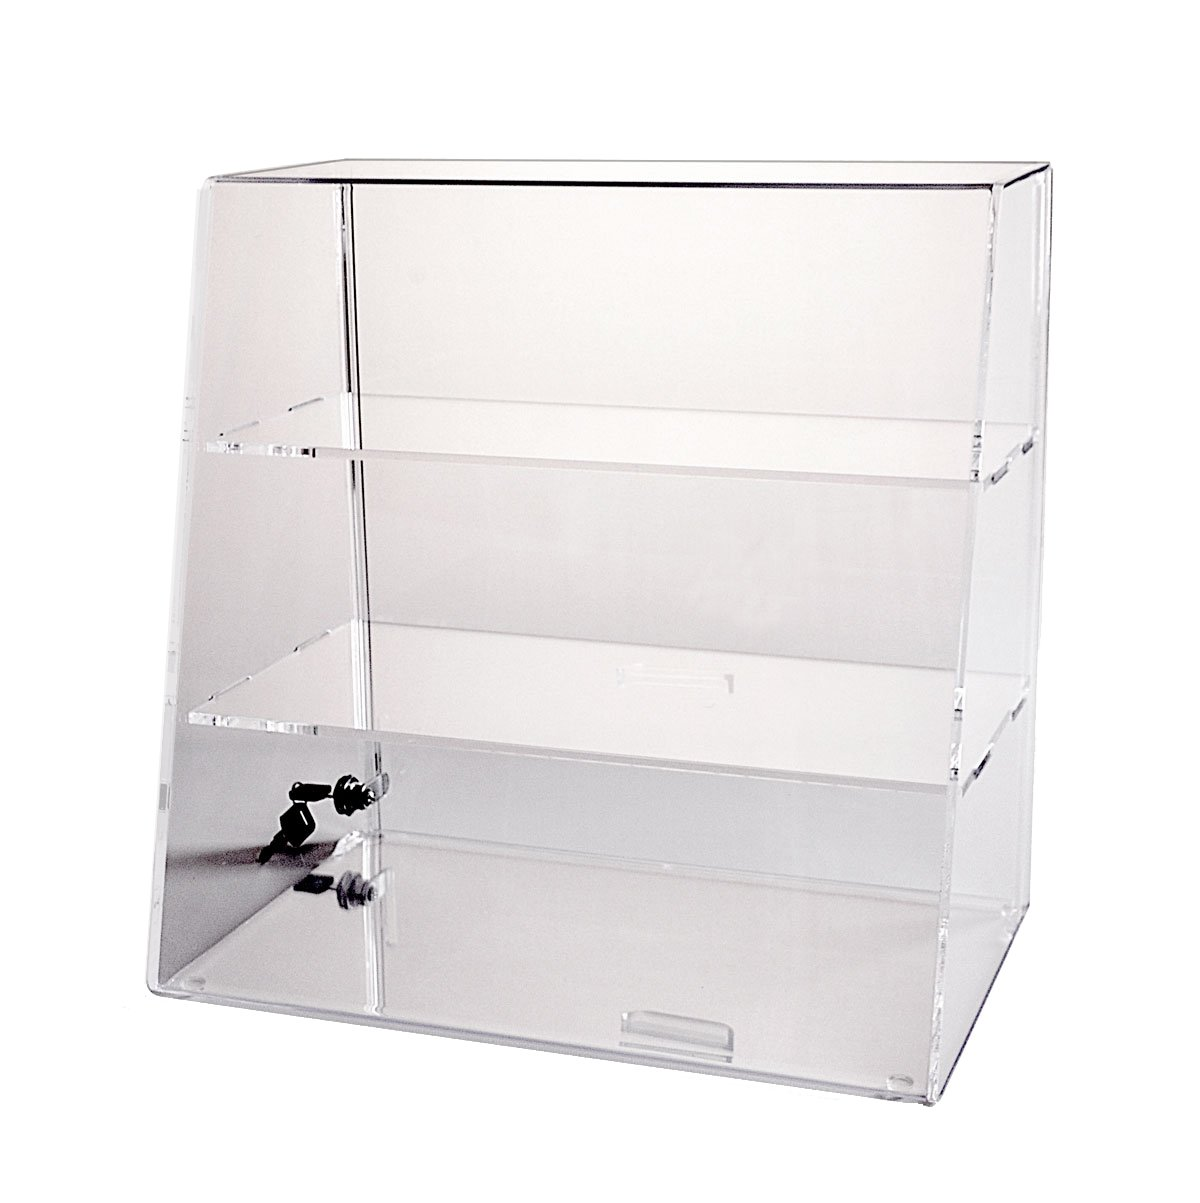 Acrylic Display Case 16 H x 16 W x 10 | Locking Display Case with 2 Shelves | Countertop Case with Angled Front and Slide-Up Back Door - ACAS162